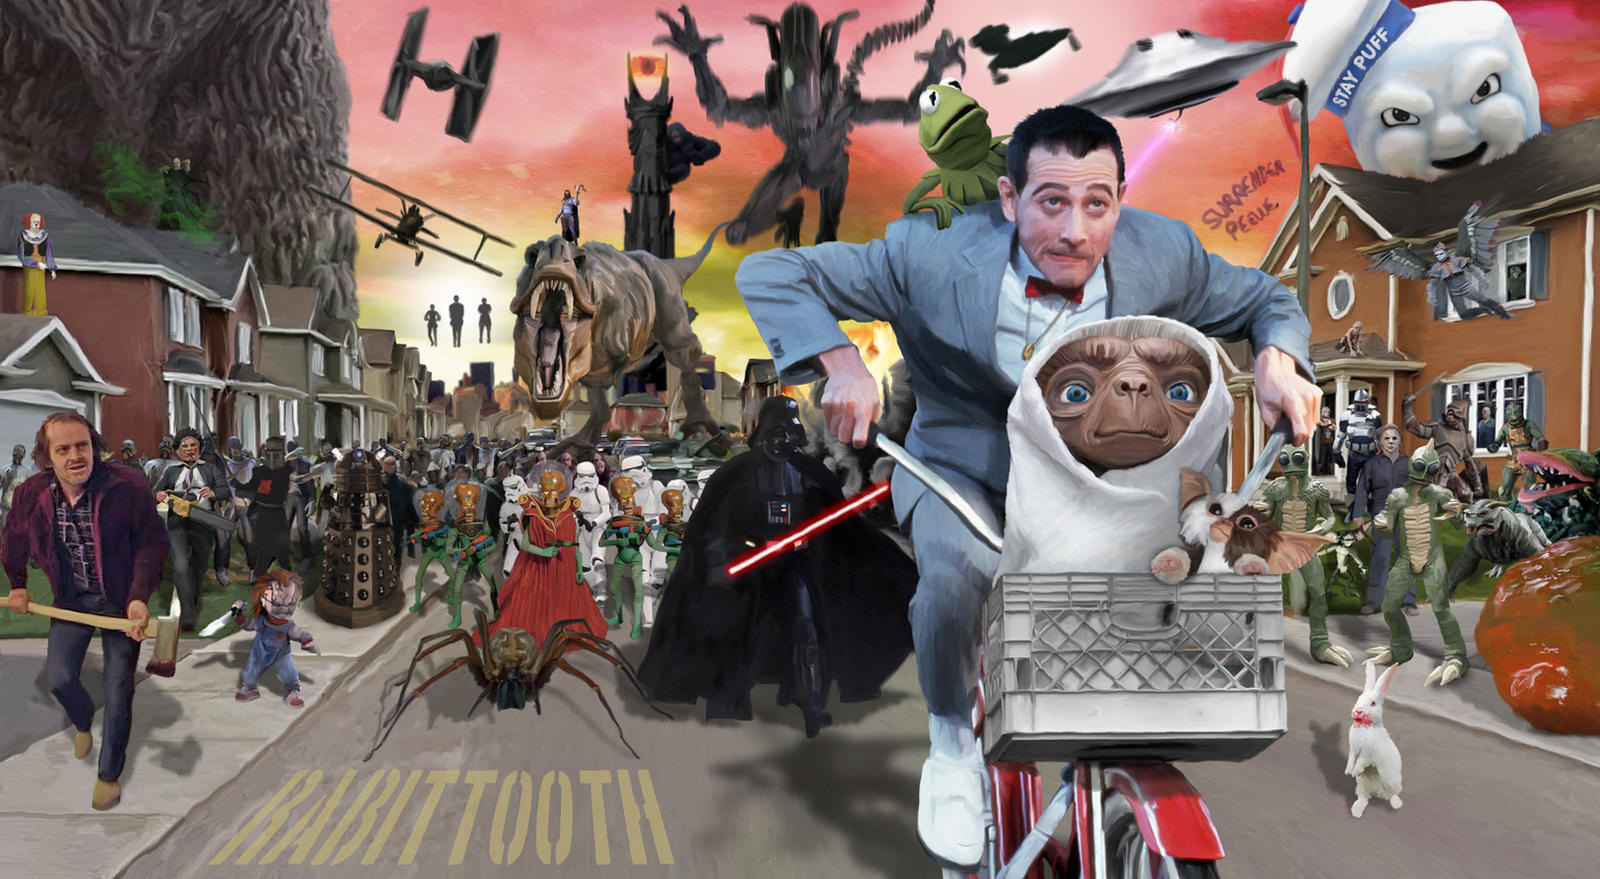 Pee Wee Saves the Day by Rabittooth